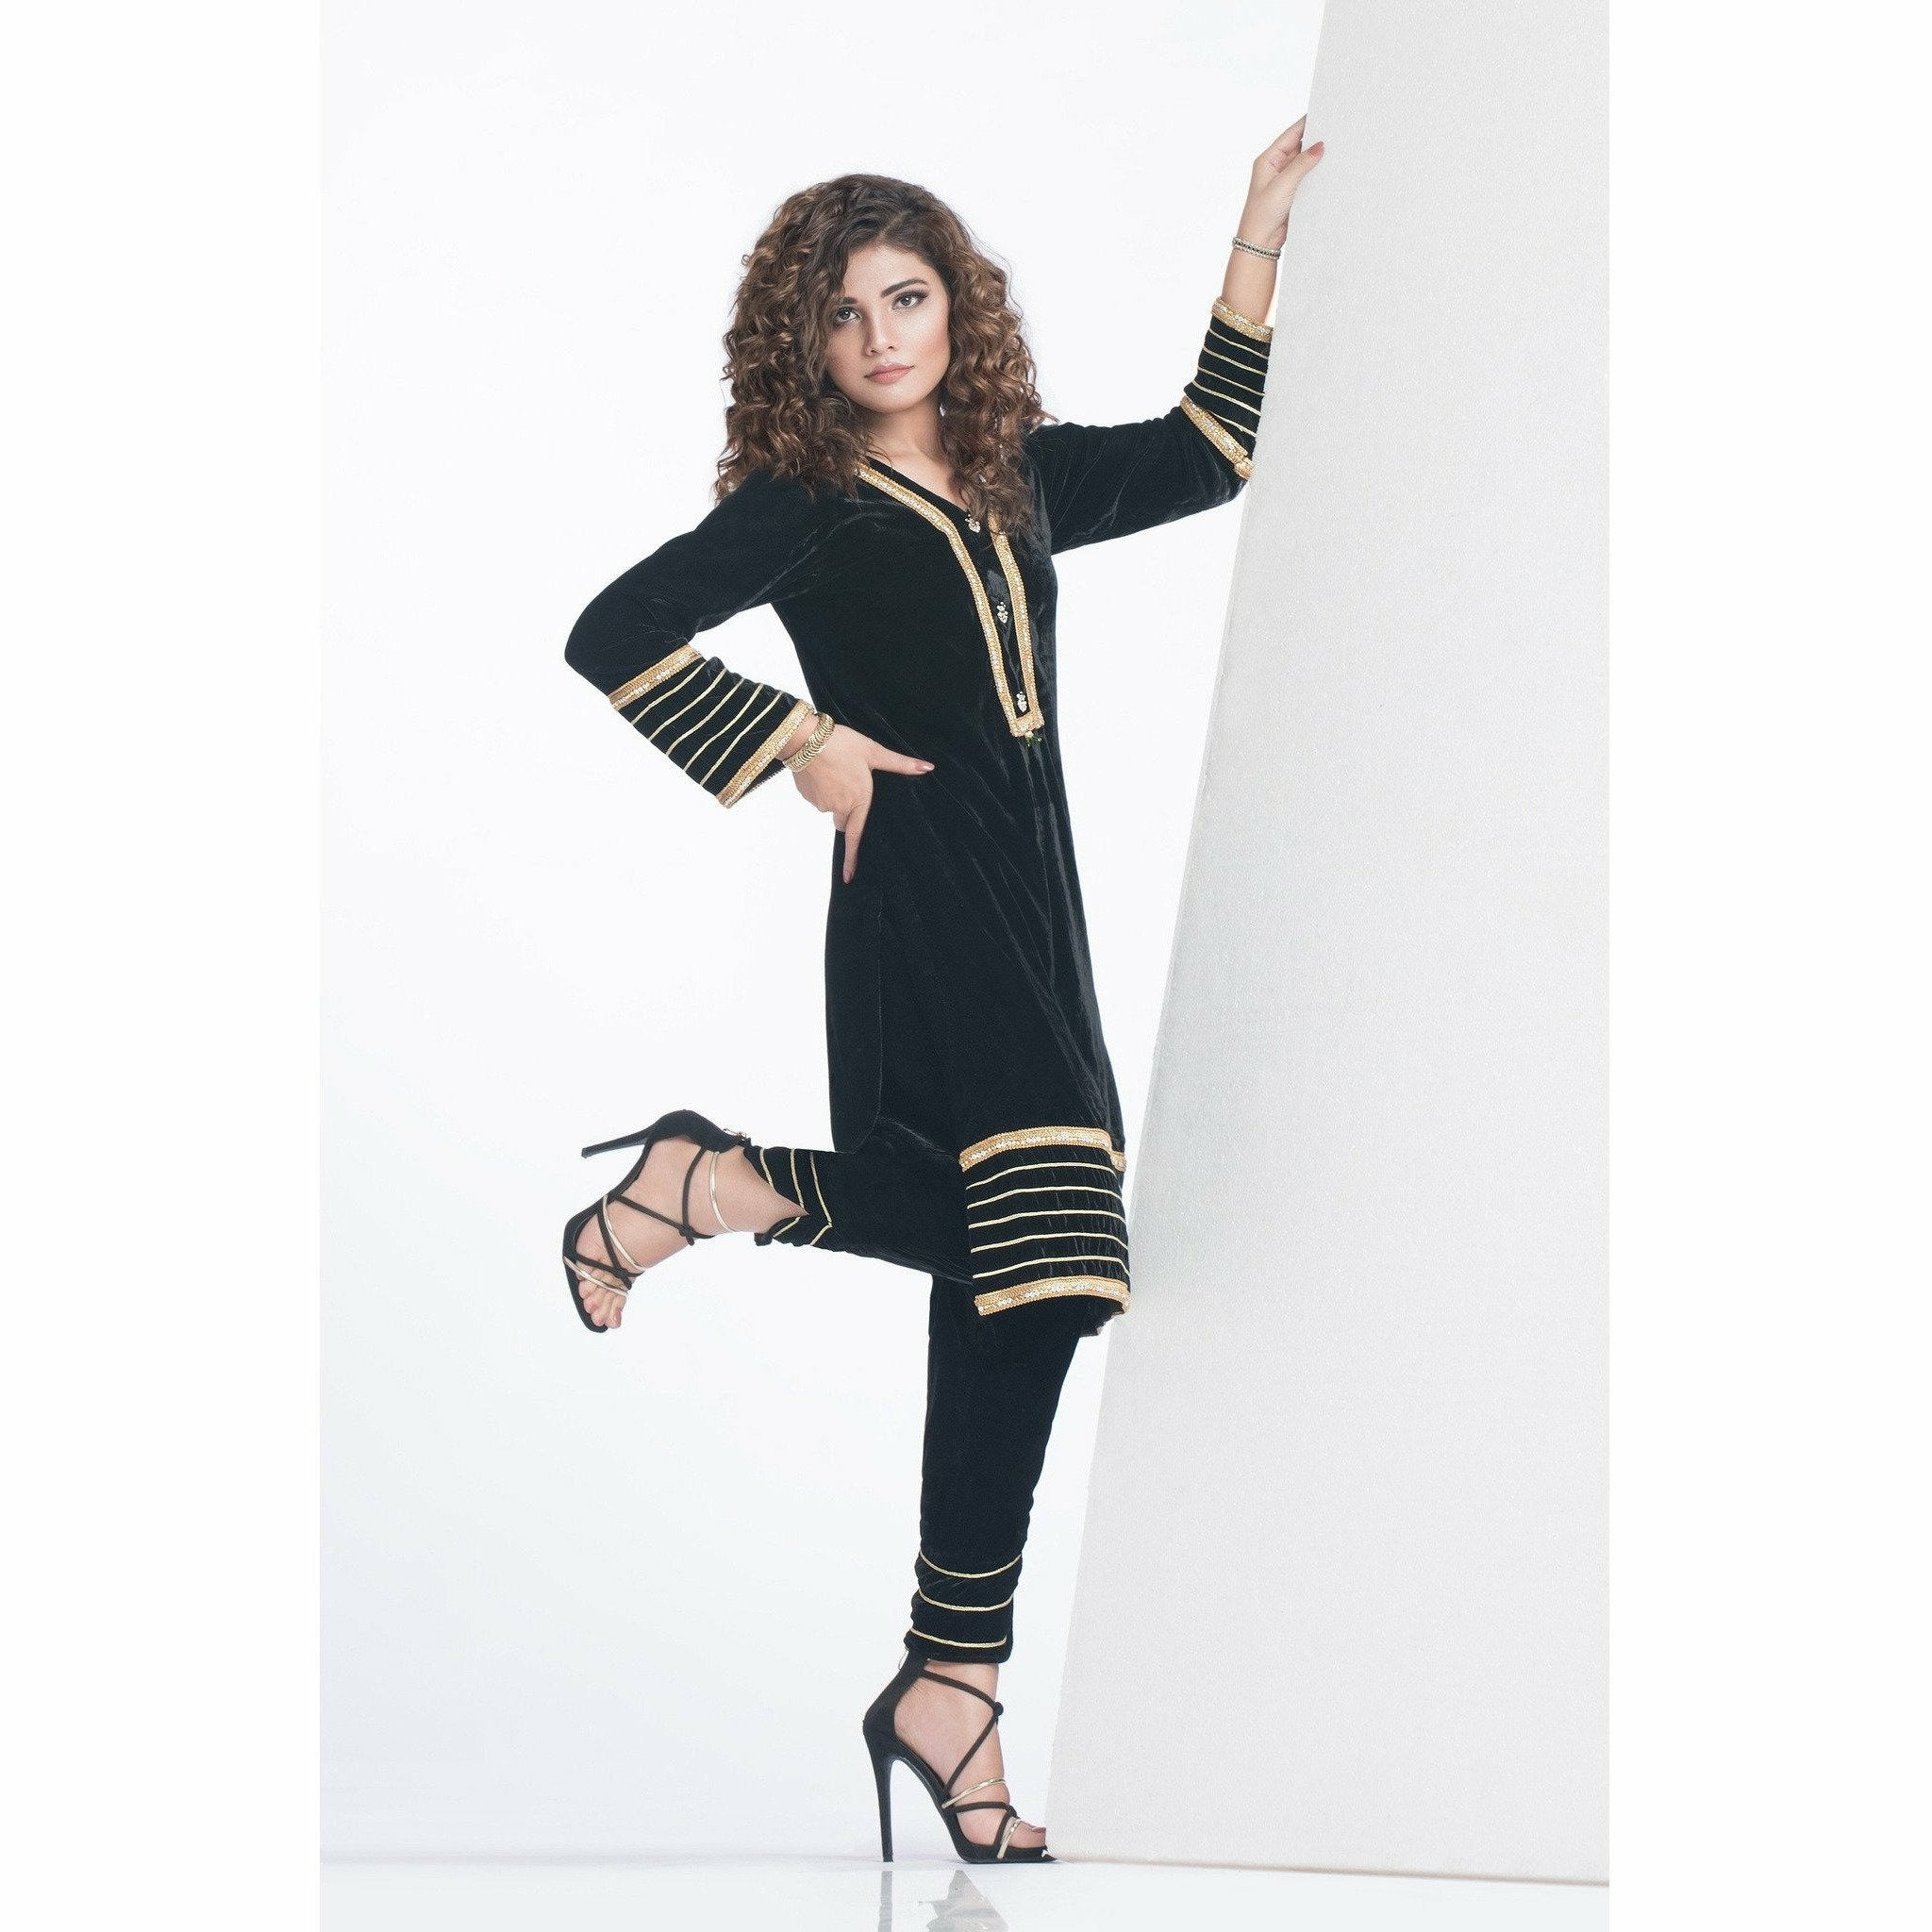 Velvet Pret Pakistani Designer Clothes, pakistani salwar kameez uk, salwar kameez online uk, pakistani suits online uk